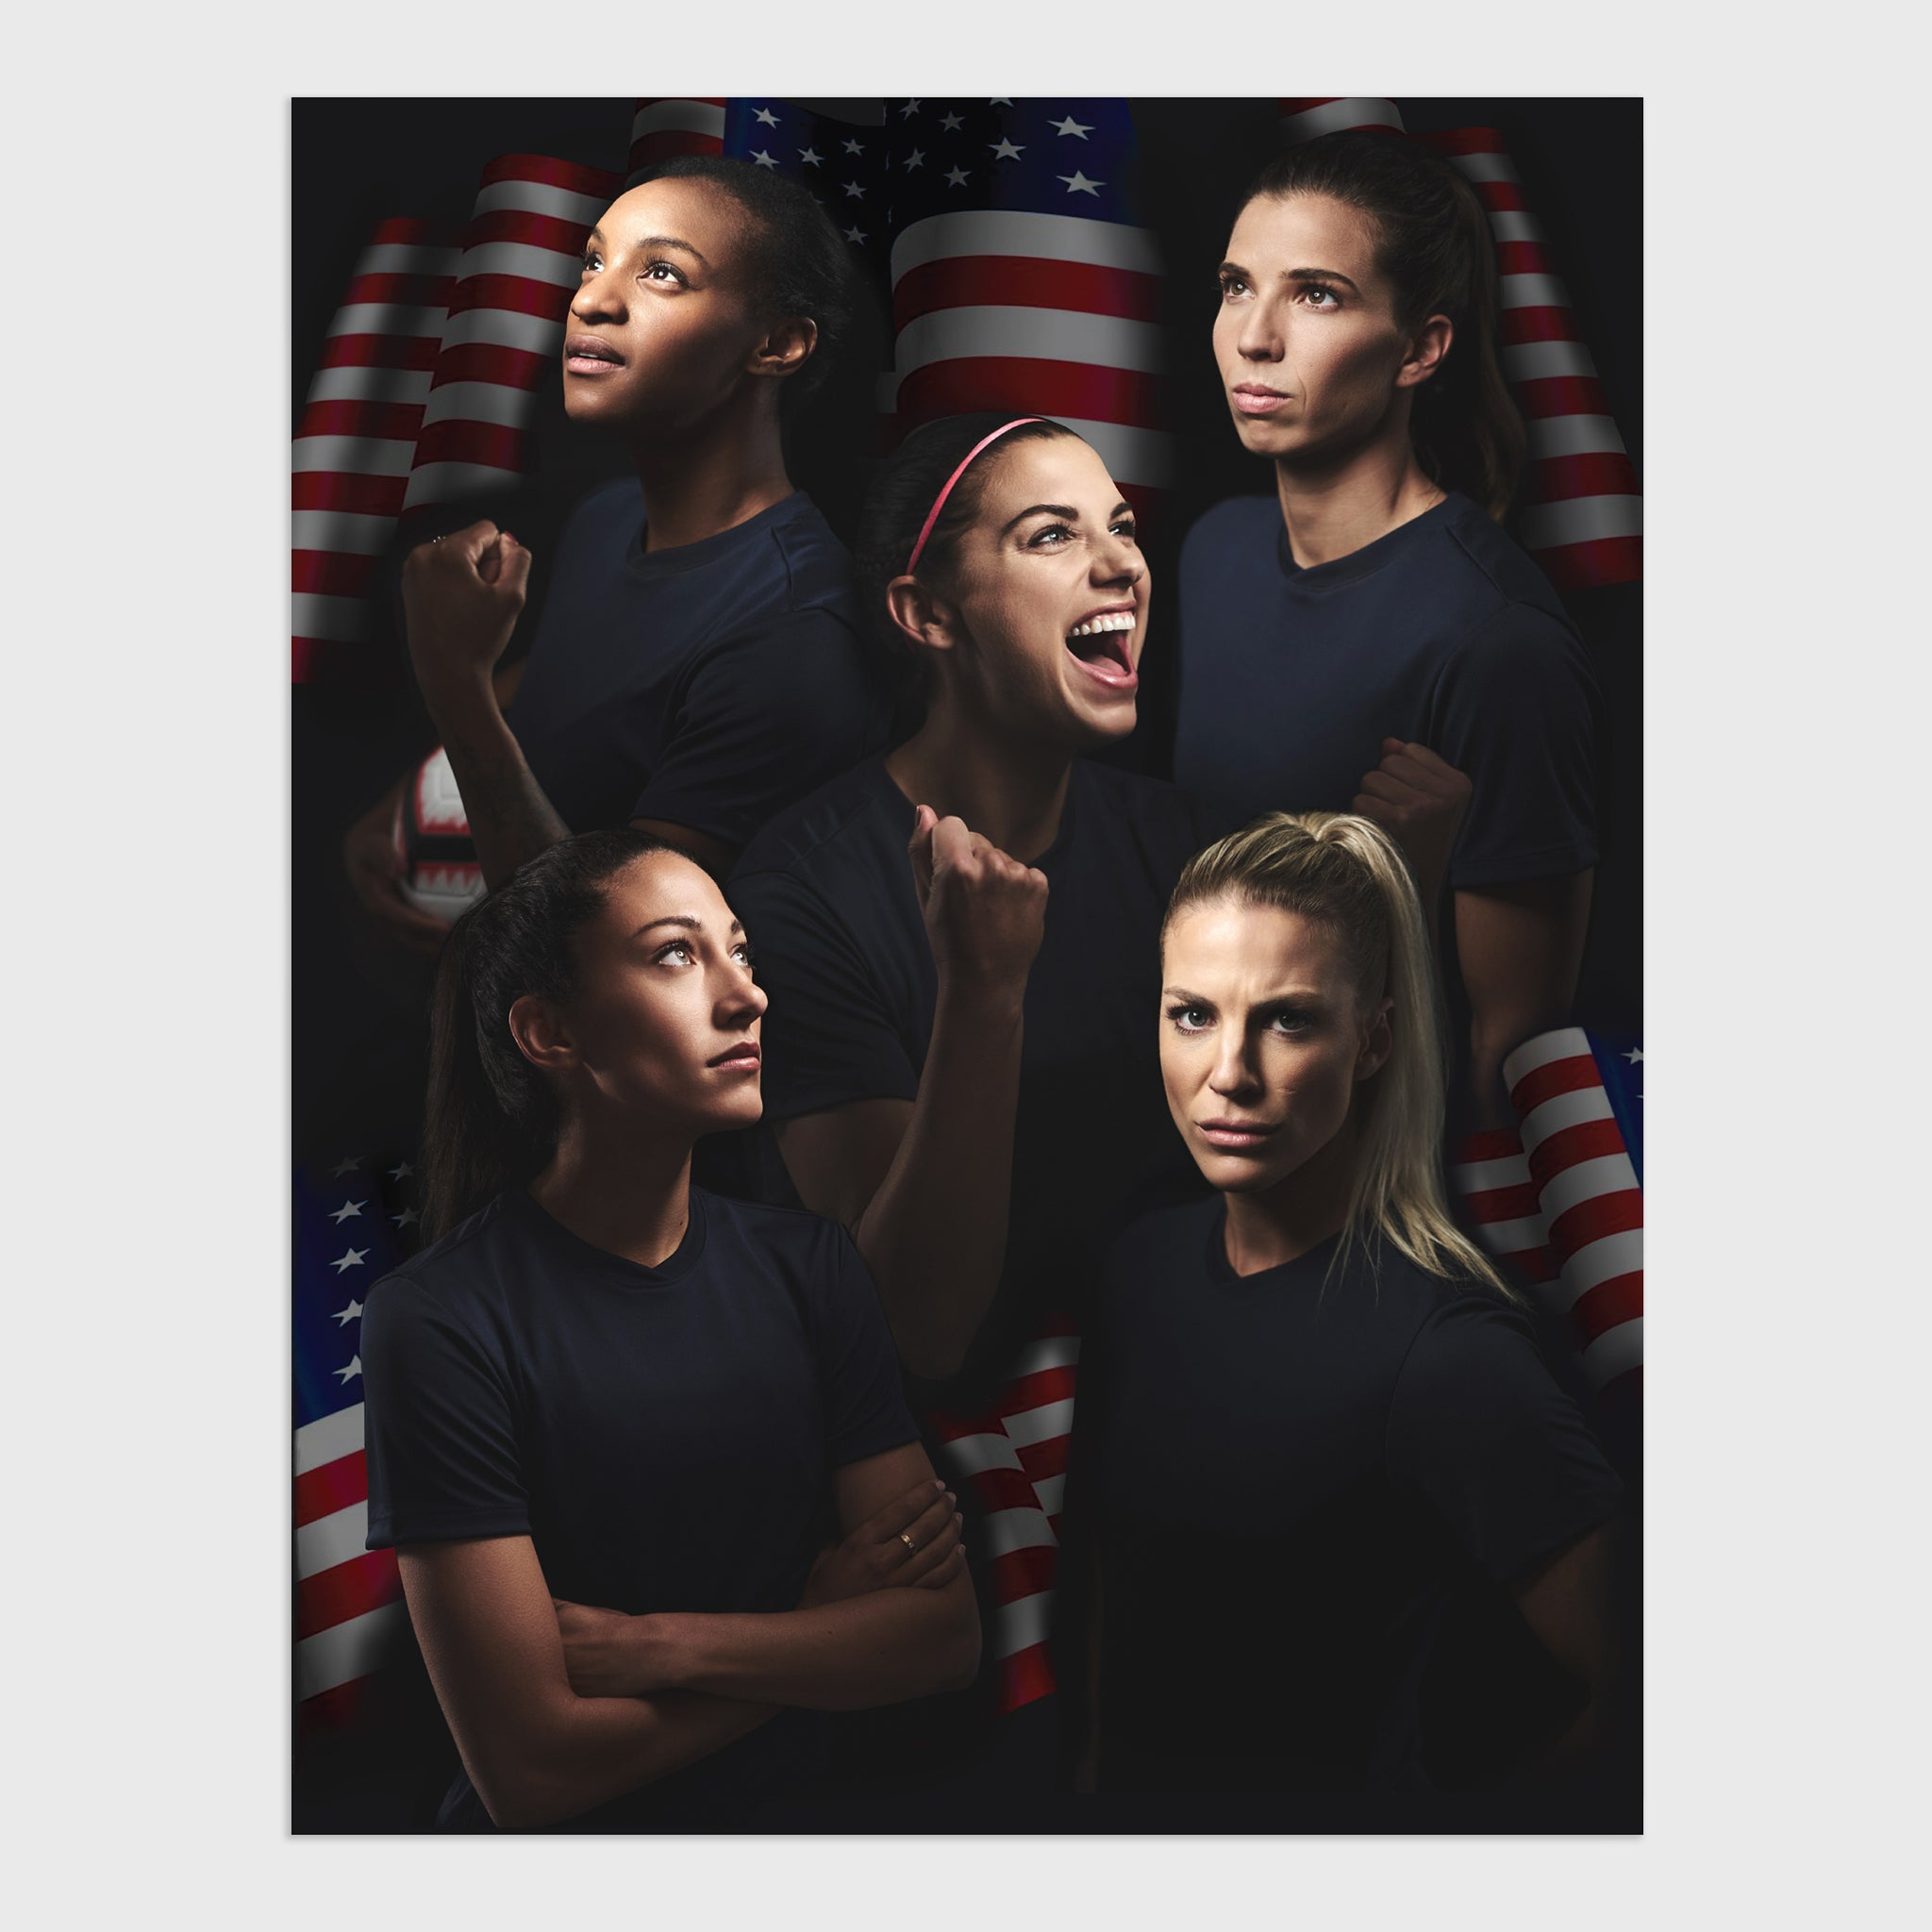 uswnt us usa united states women's national team soccer champion collectible exclusive box graphic print art culturefly